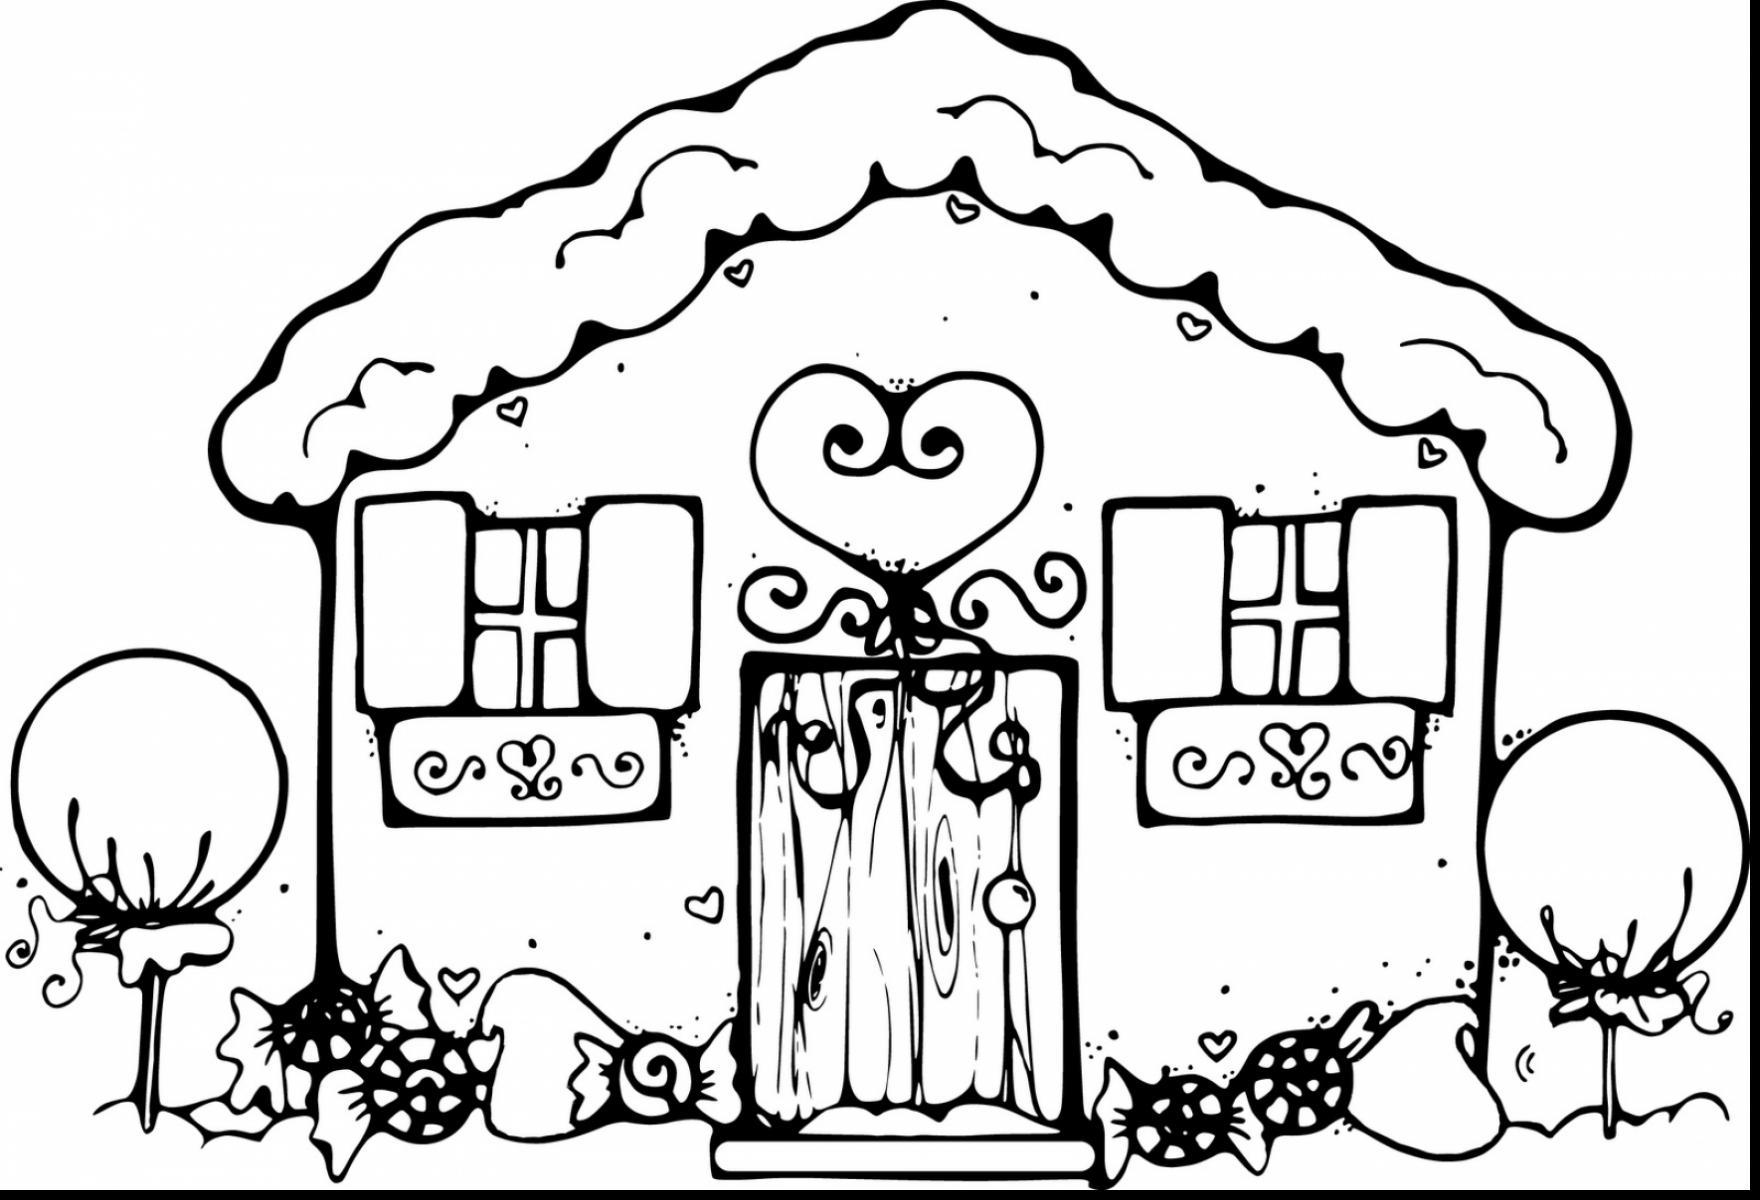 Free Gingerbread House Clip Art, Download Free Clip Art, Free Clip.